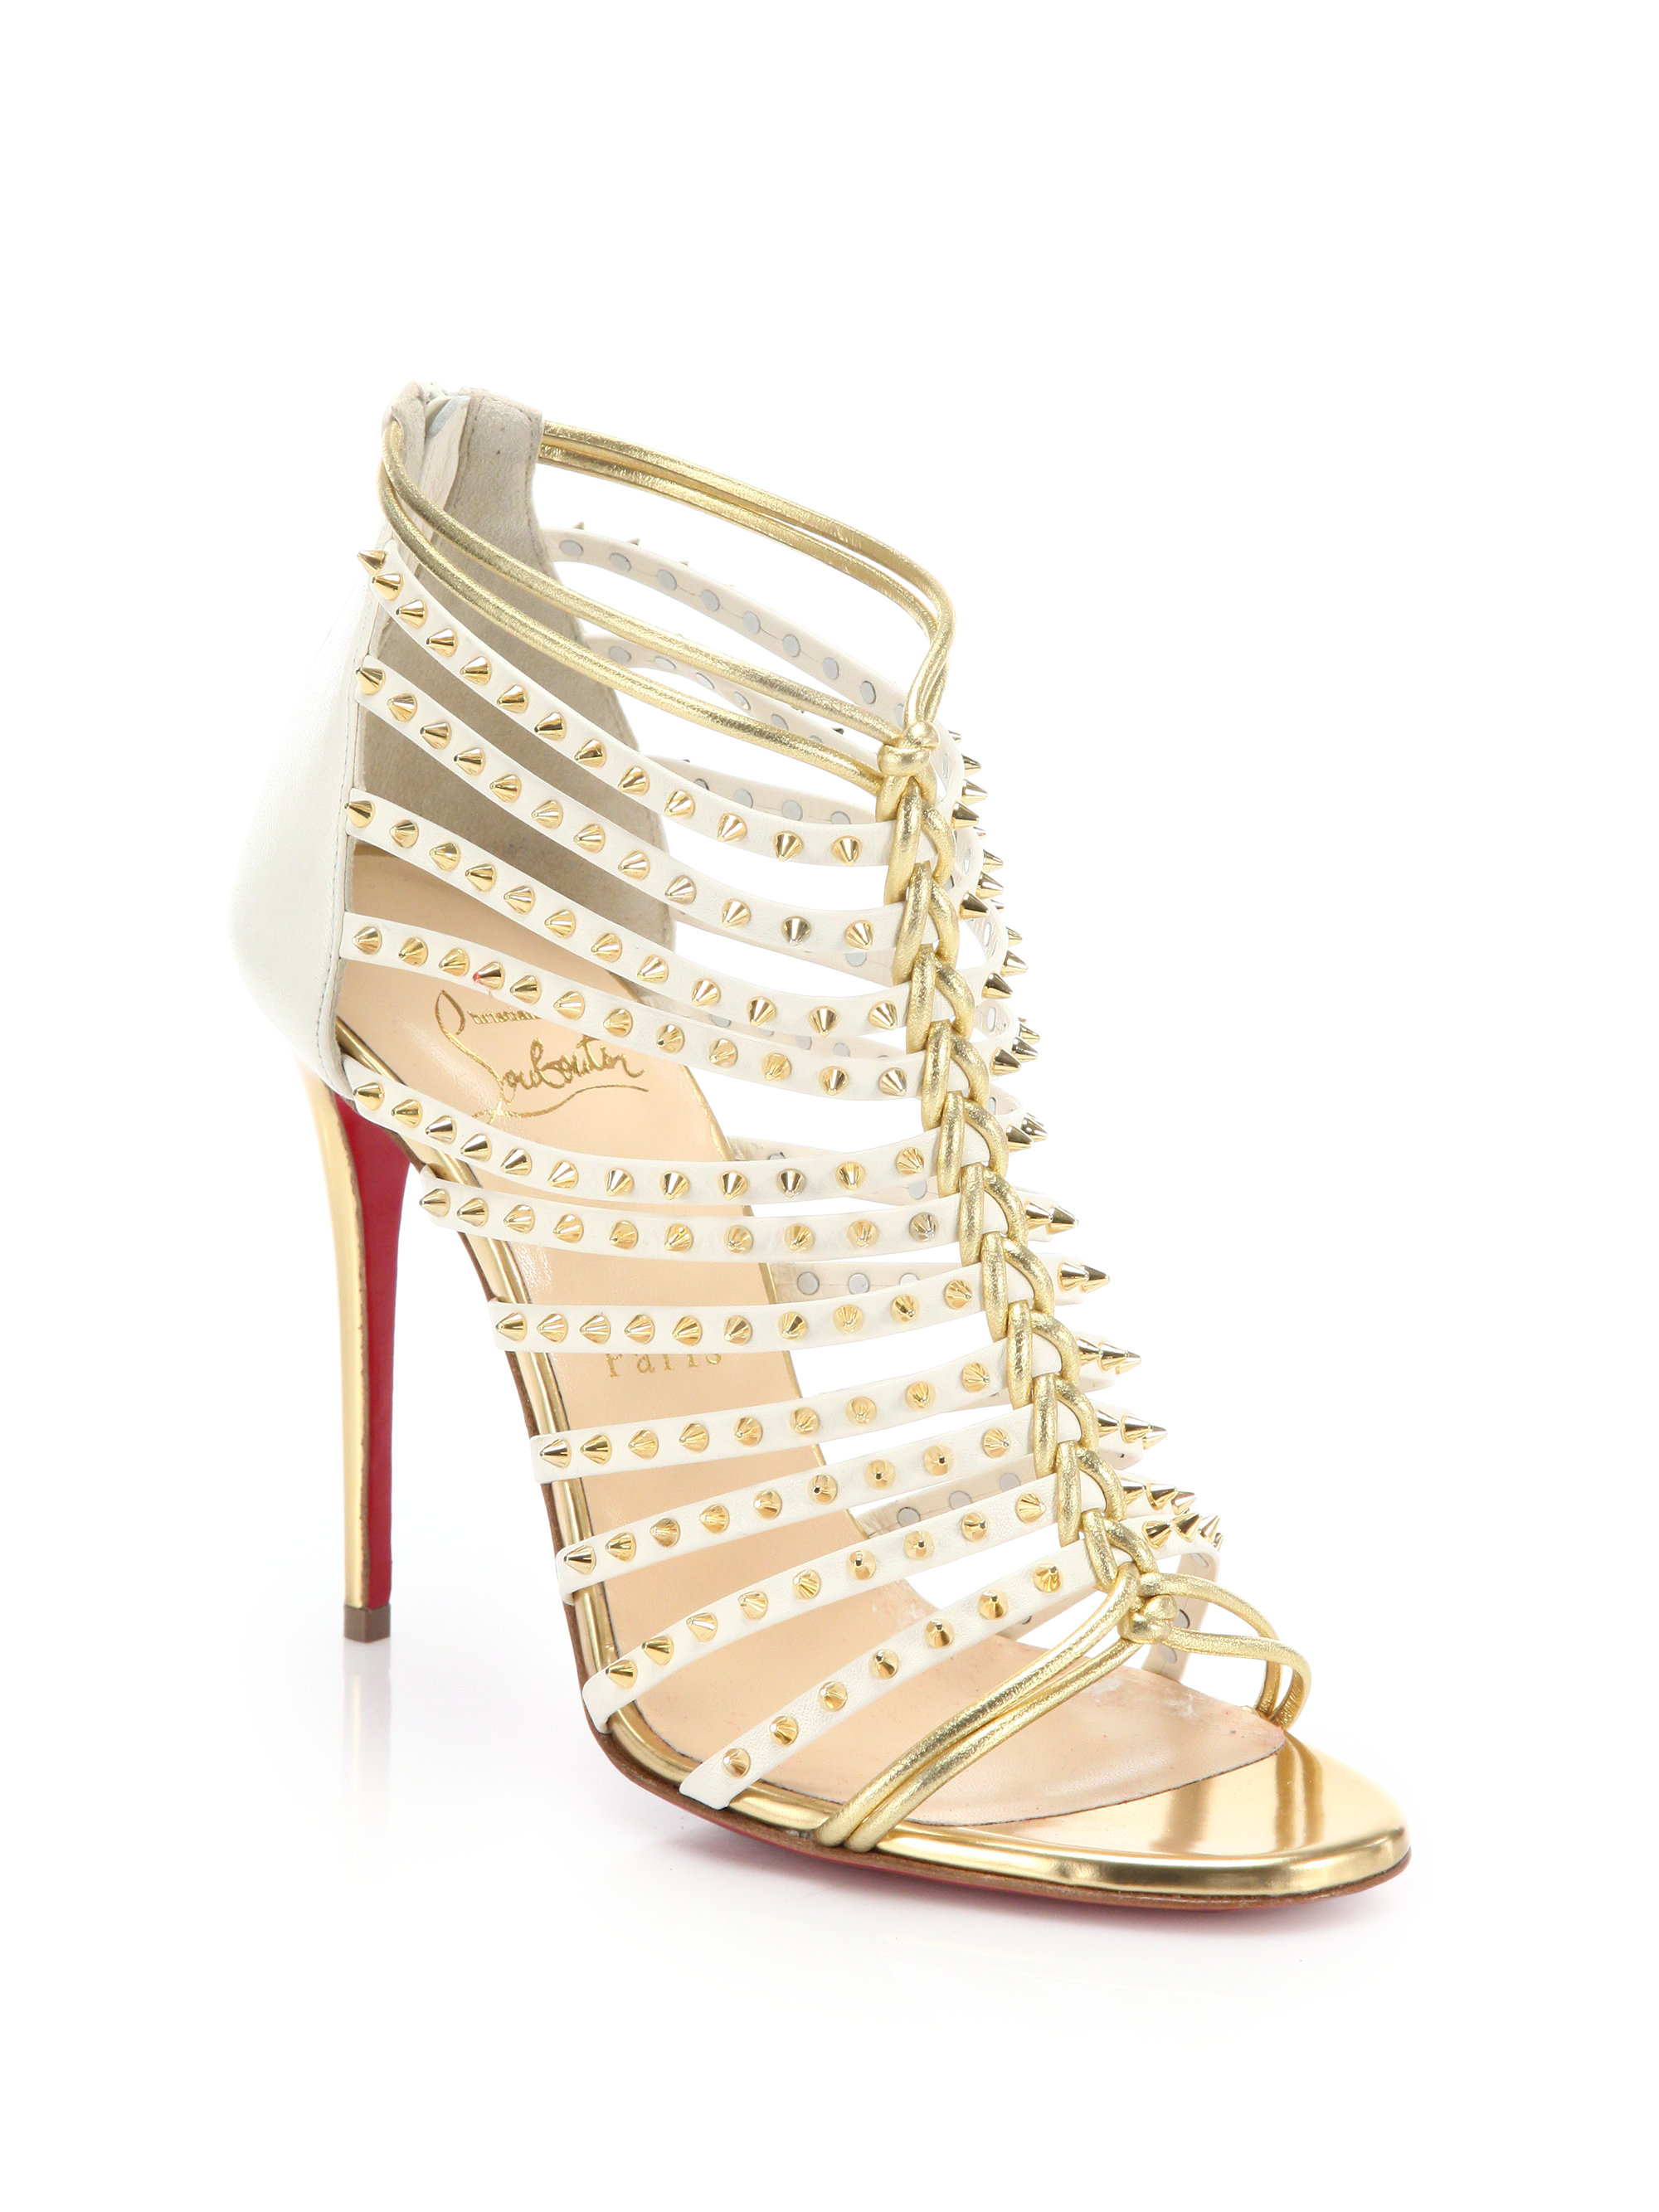 Lyst - Christian Louboutin Millaclou Studded Leather Sandals in Metallic 2565461dda